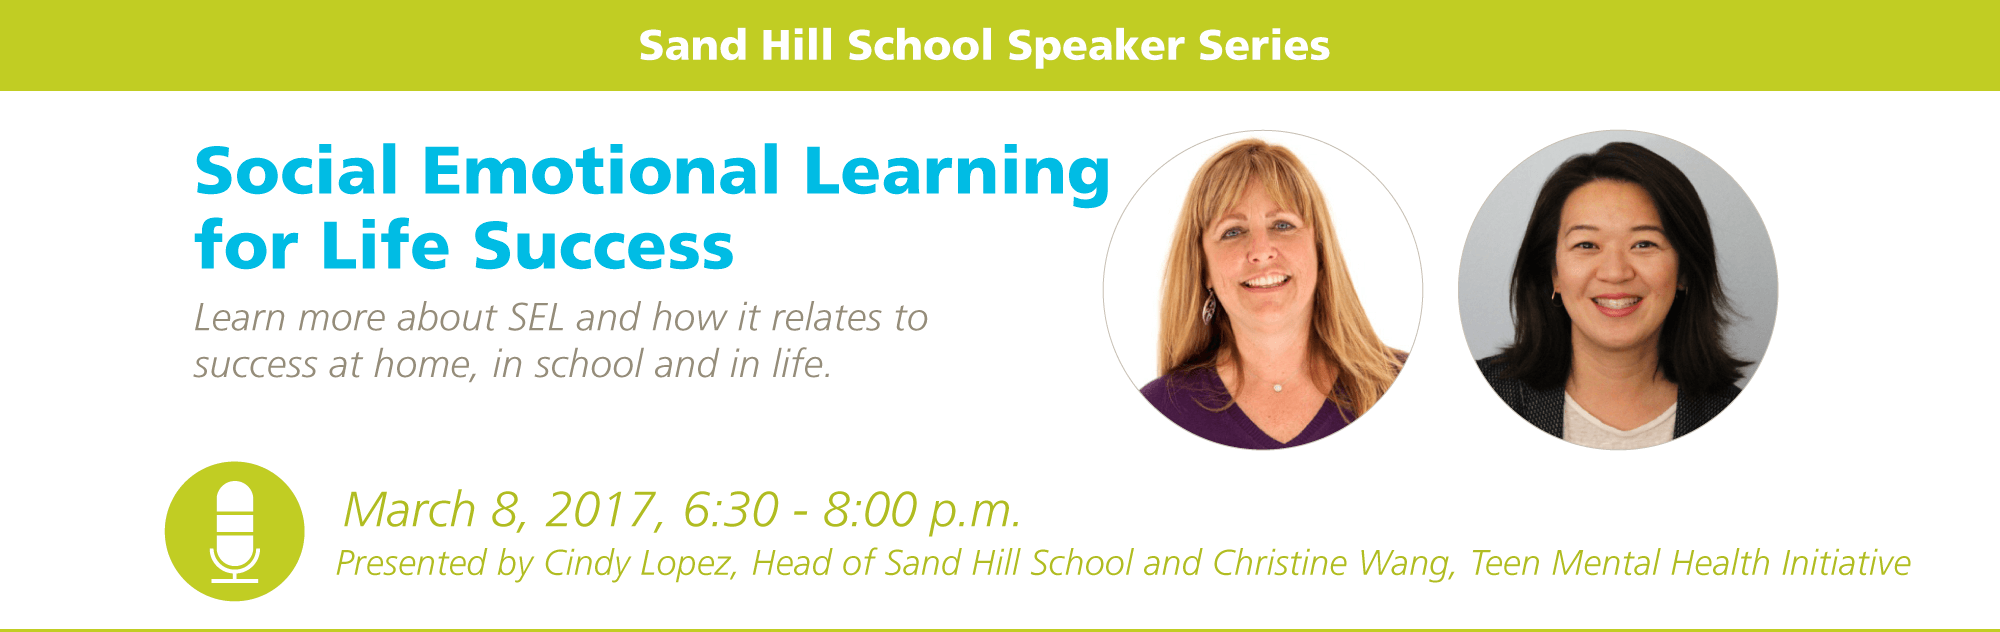 Social Emotional Learning for Life Success. Learn more about SEL and how it relates to success at home, in school and in life. March 8, 2017, 6:30 - 8:00 p.m. Presented by Cindy Lopez, Head of Sand Hill School and Christine Wang, Teen Mental Health Initiative